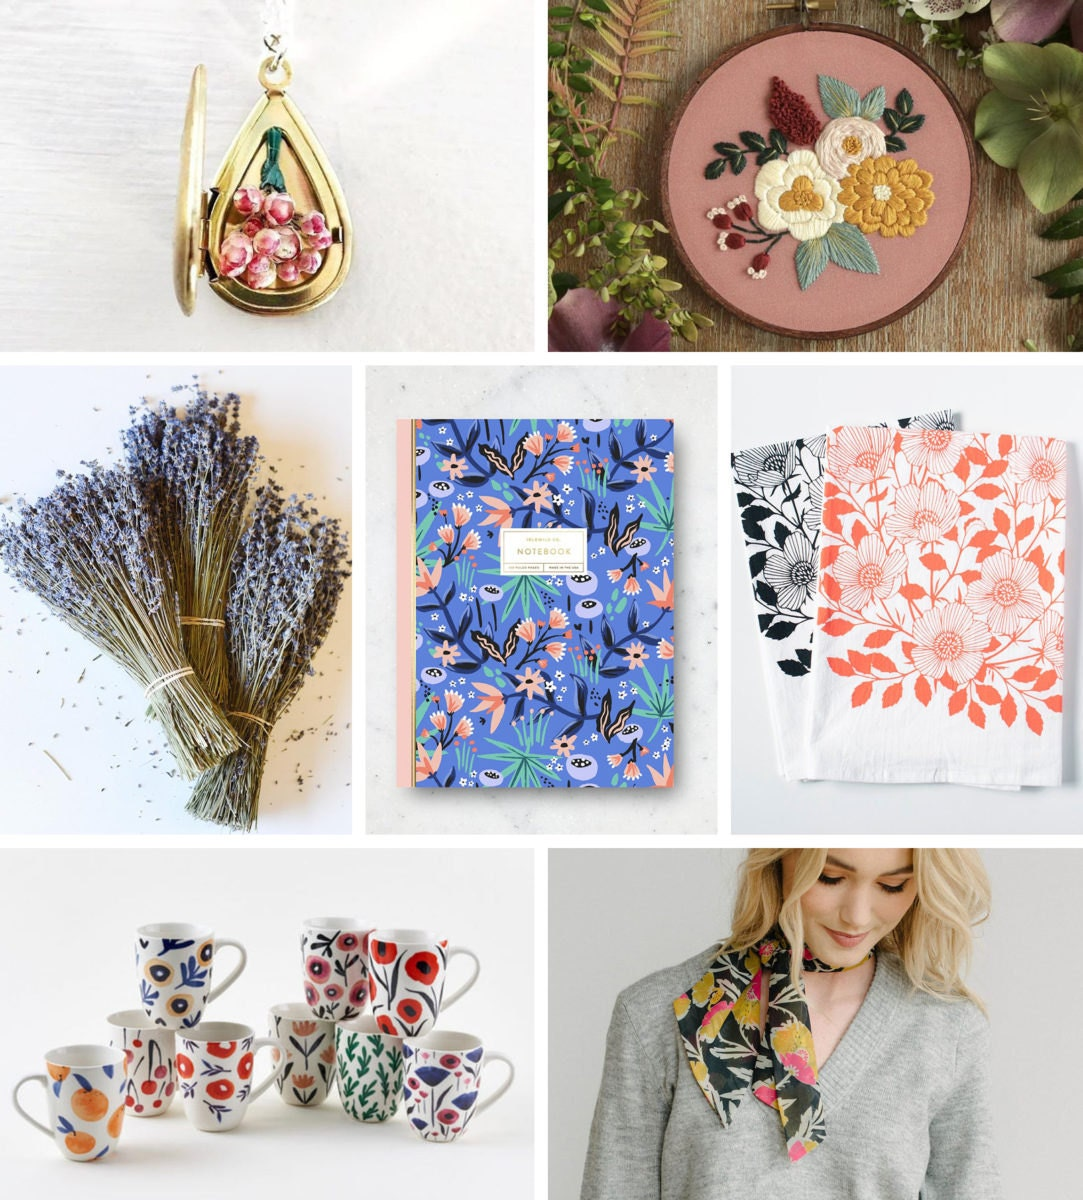 A collage of floral-themed finds from Etsy